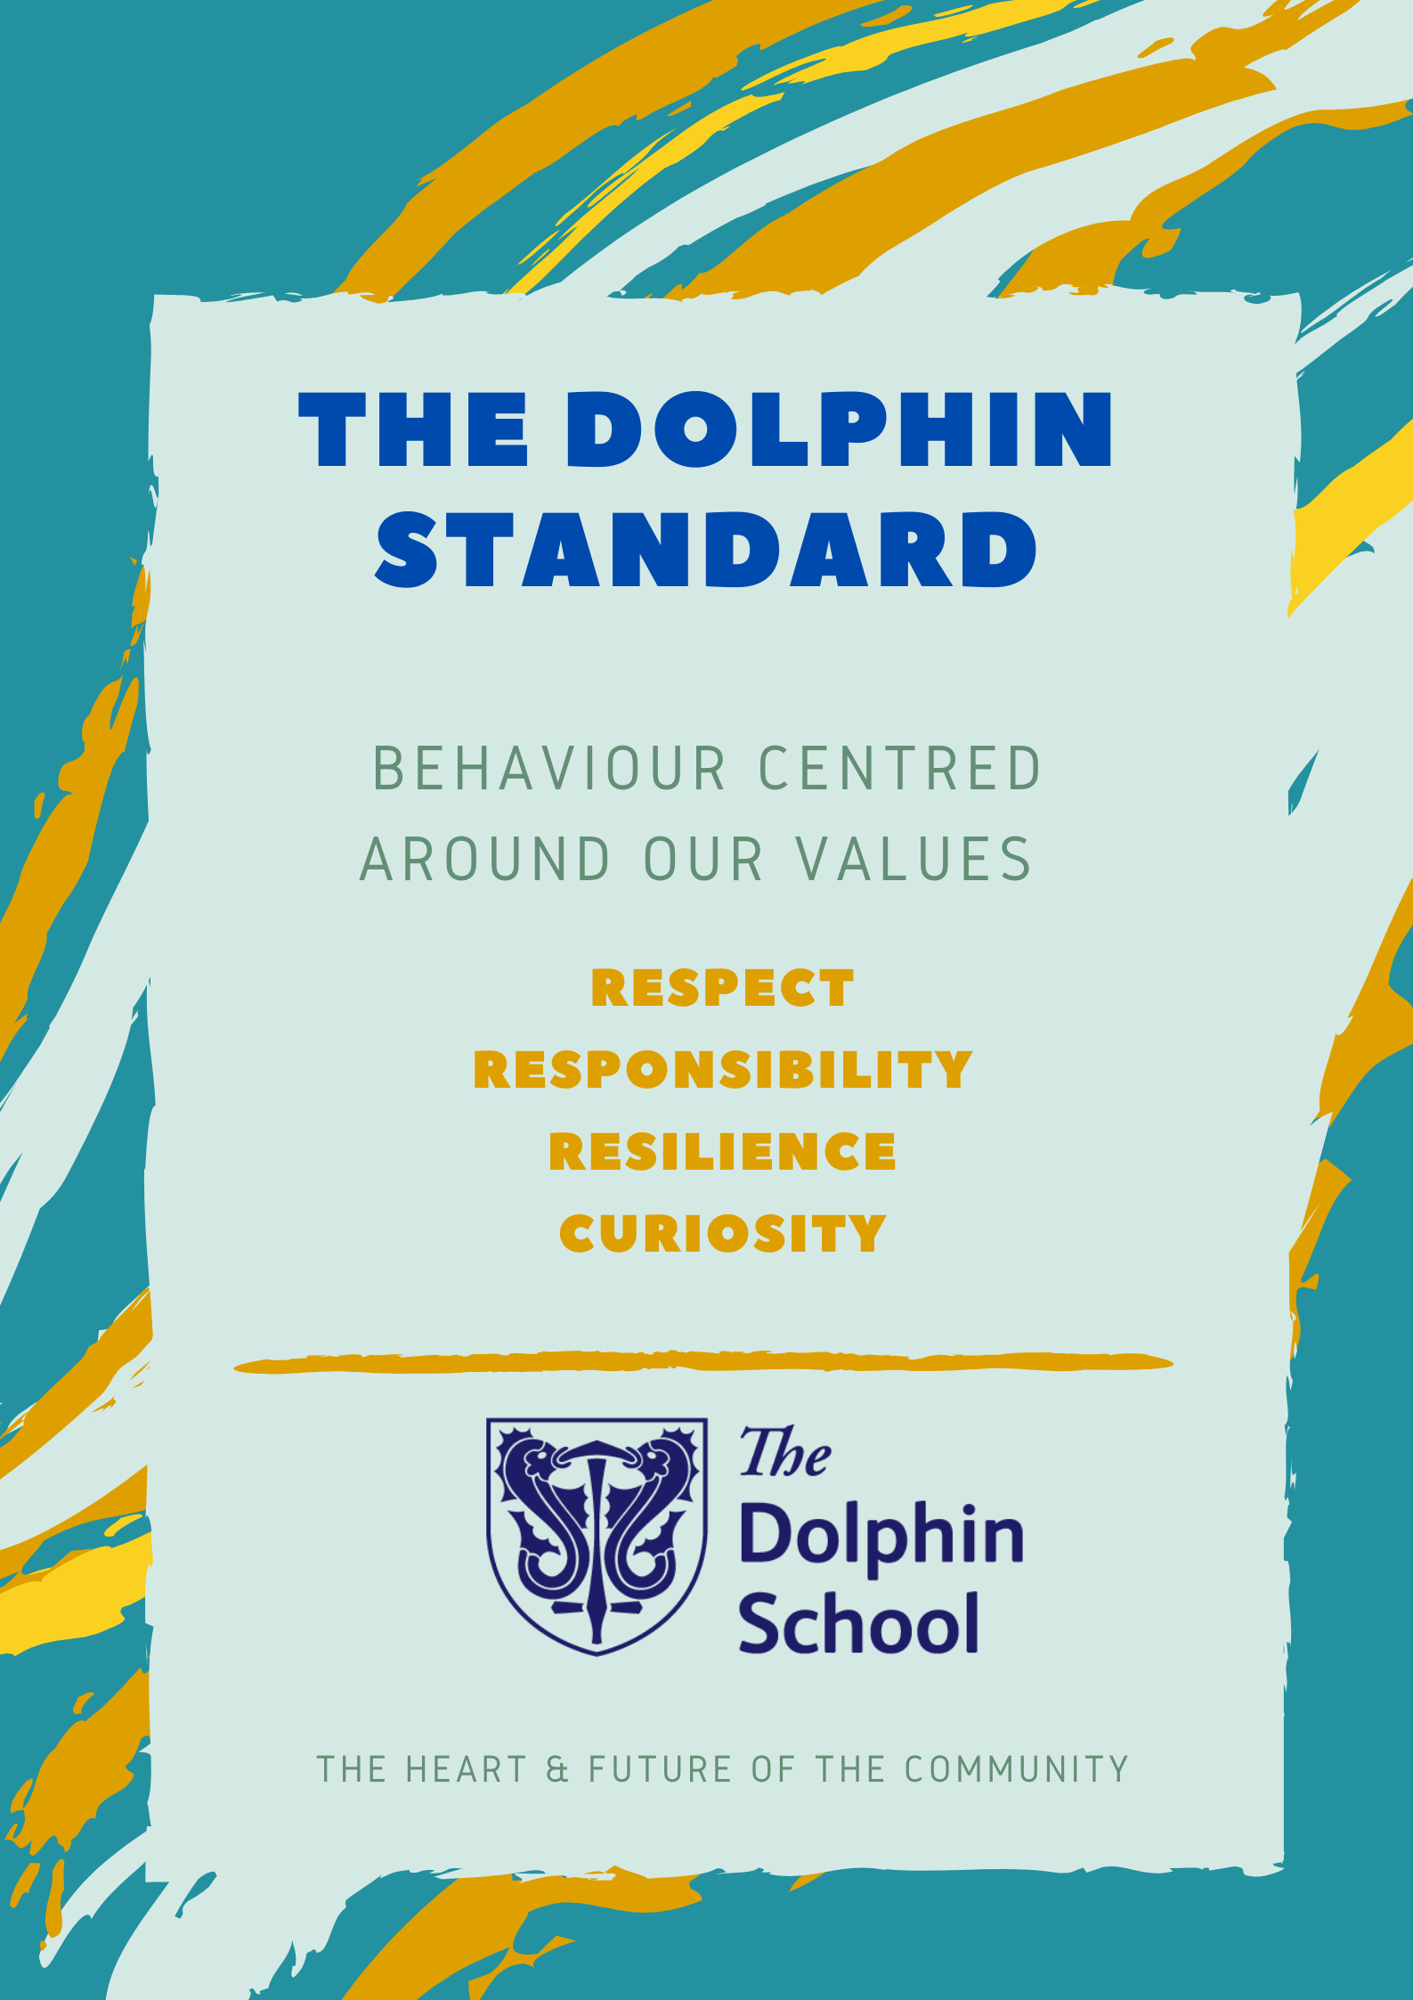 The dolphin standard